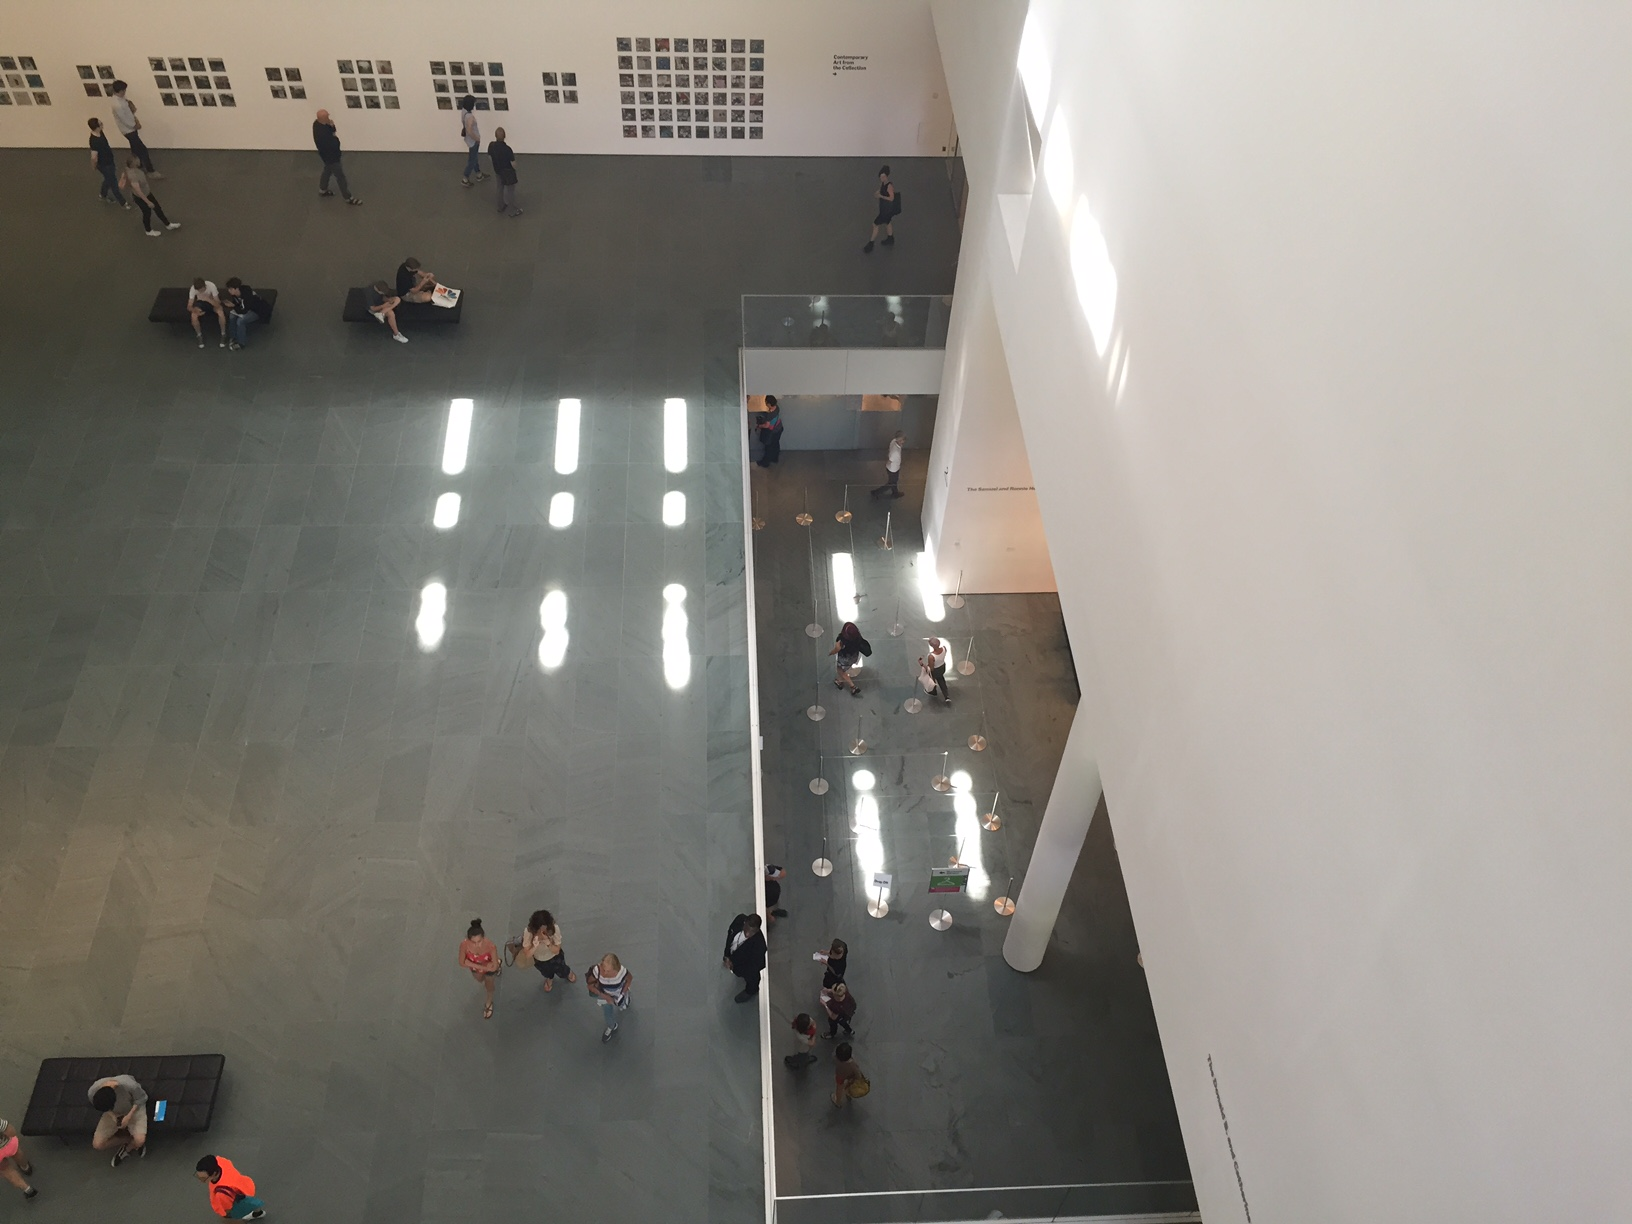 MOMA from above